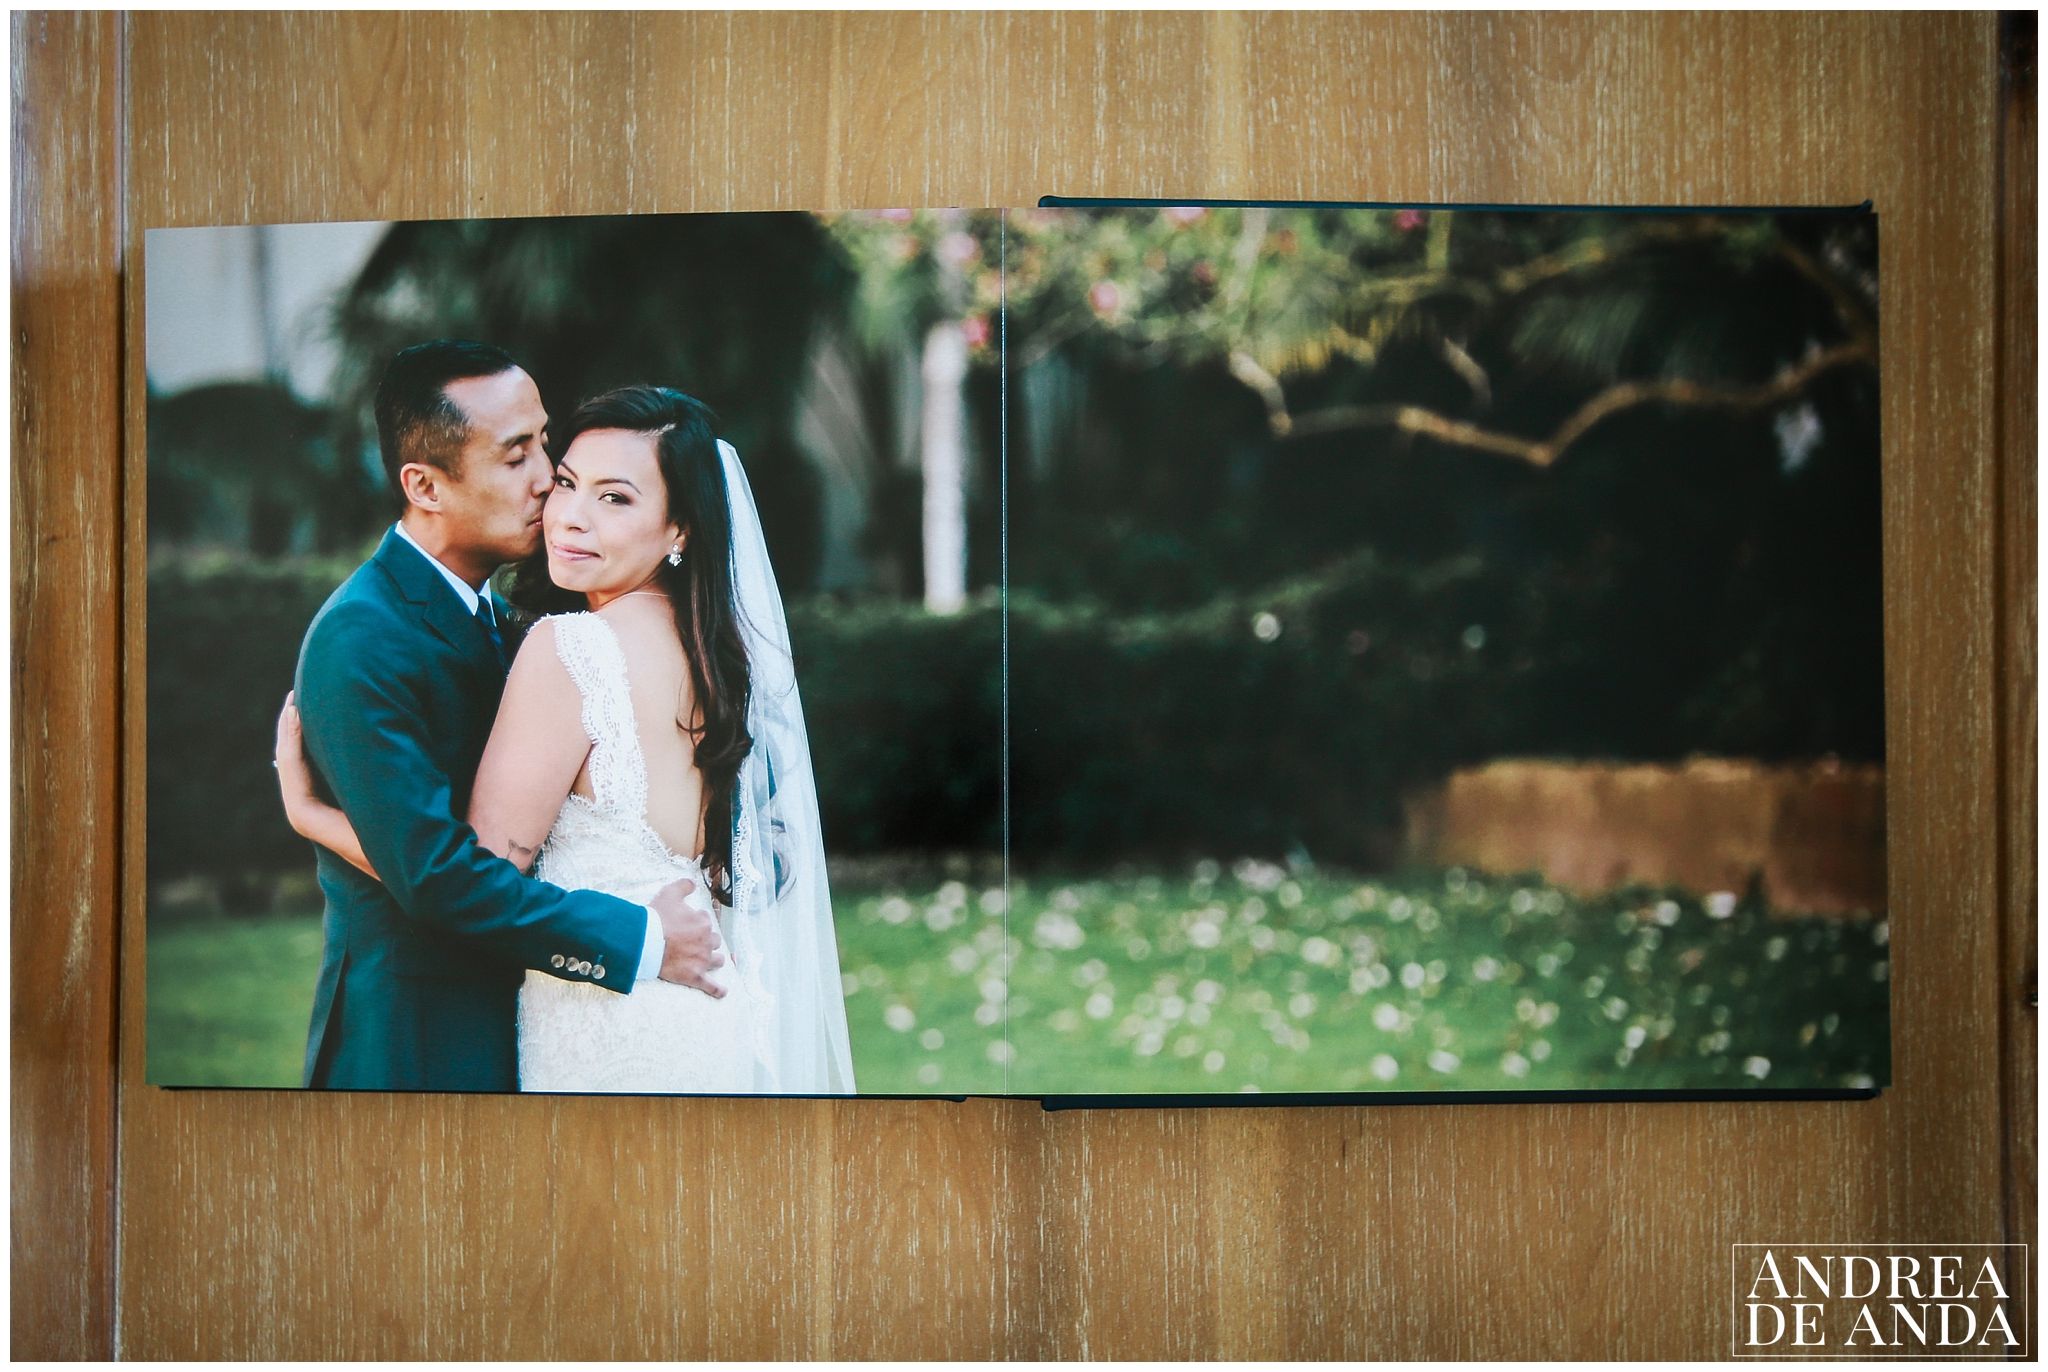 Andrea de Anda Photography_Wedding Album_0009.jpg